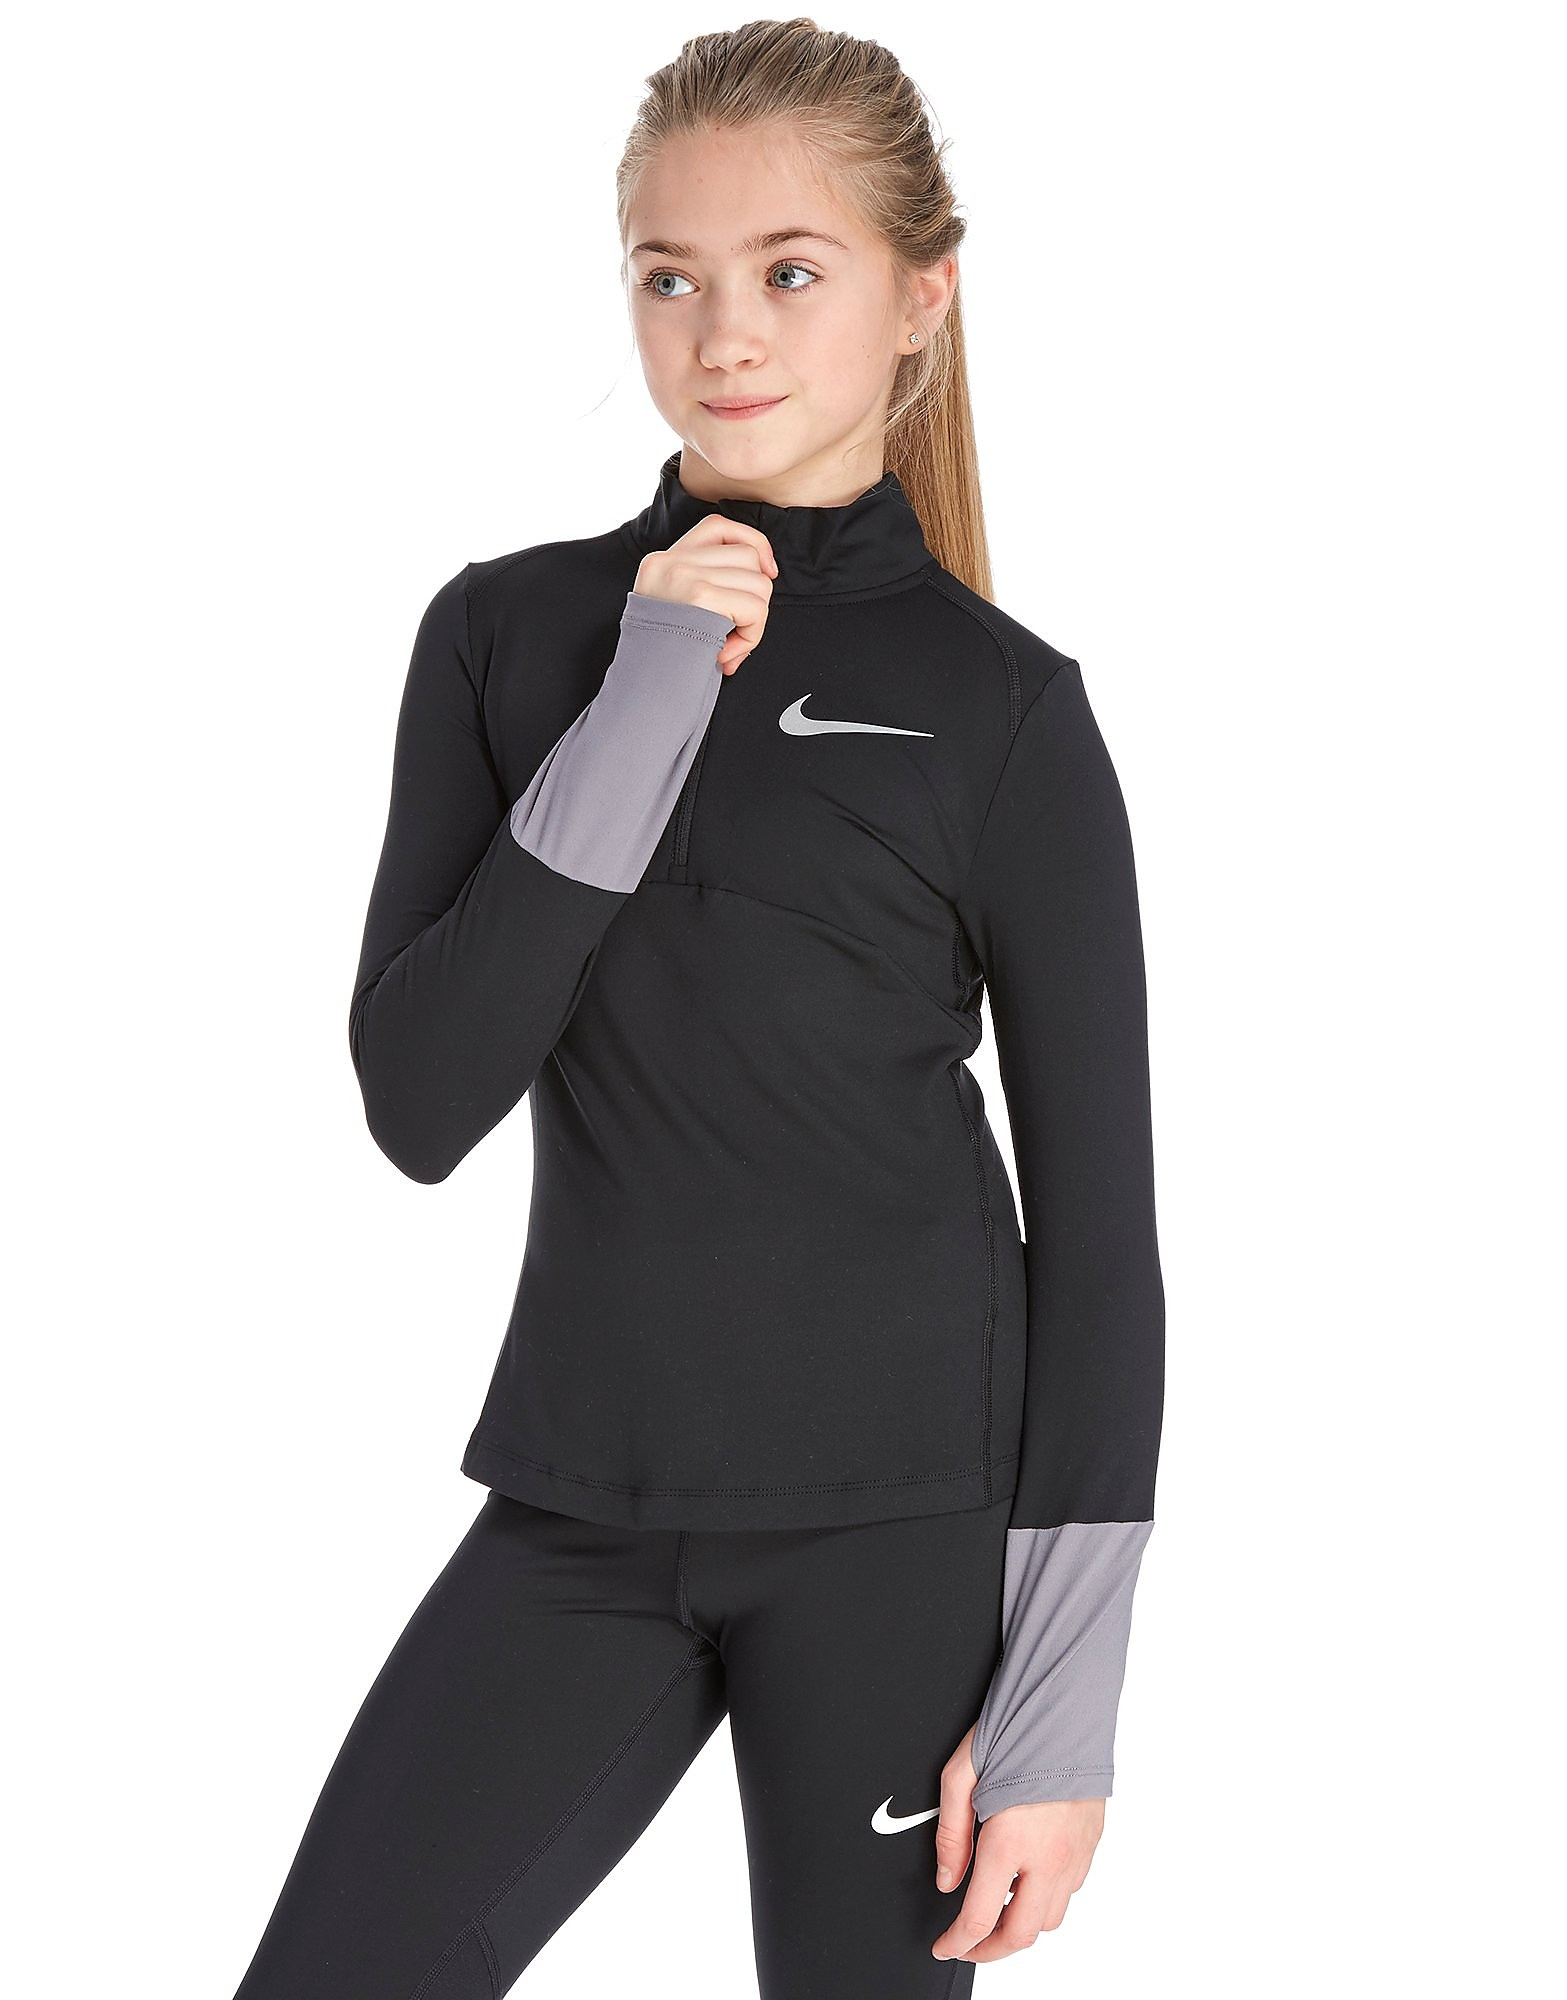 Nike camiseta de running Girls' 1/4 Zip Element júnior